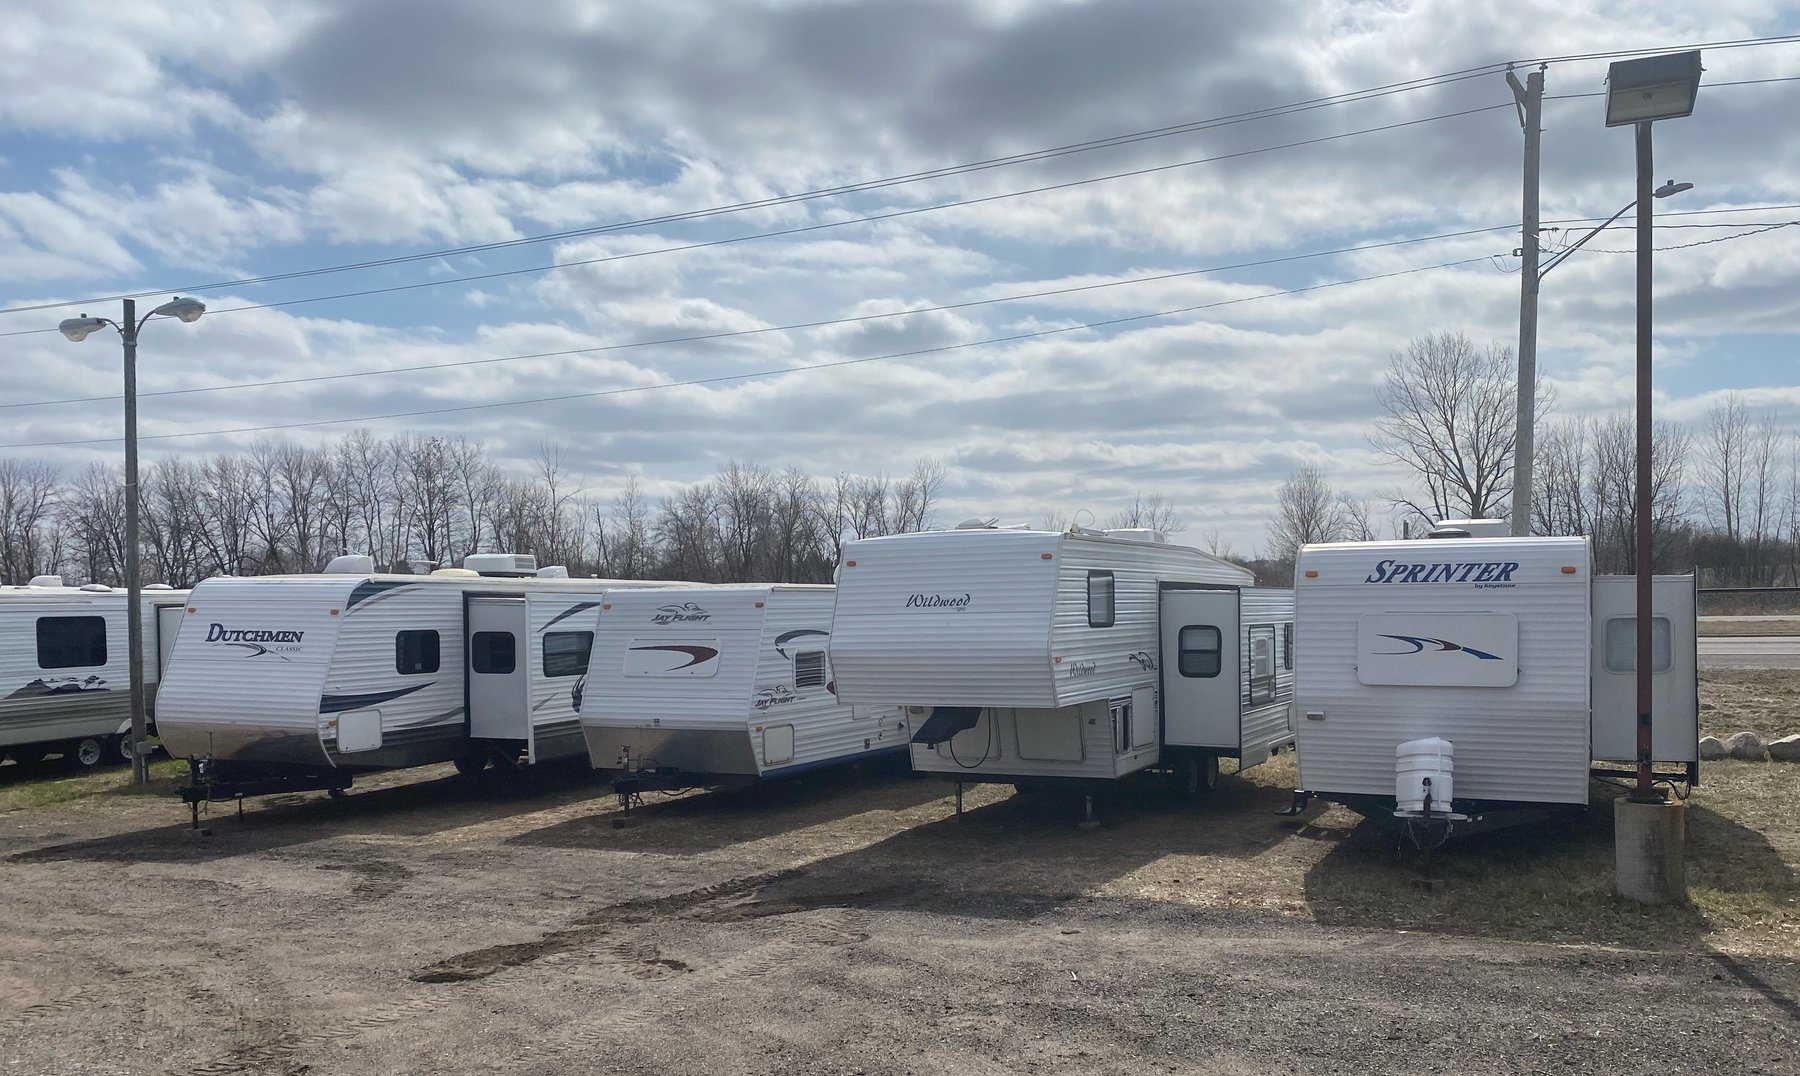 30 Units: (1) Motorhome, (11) 5th Wheels and (18) Travel Trailers